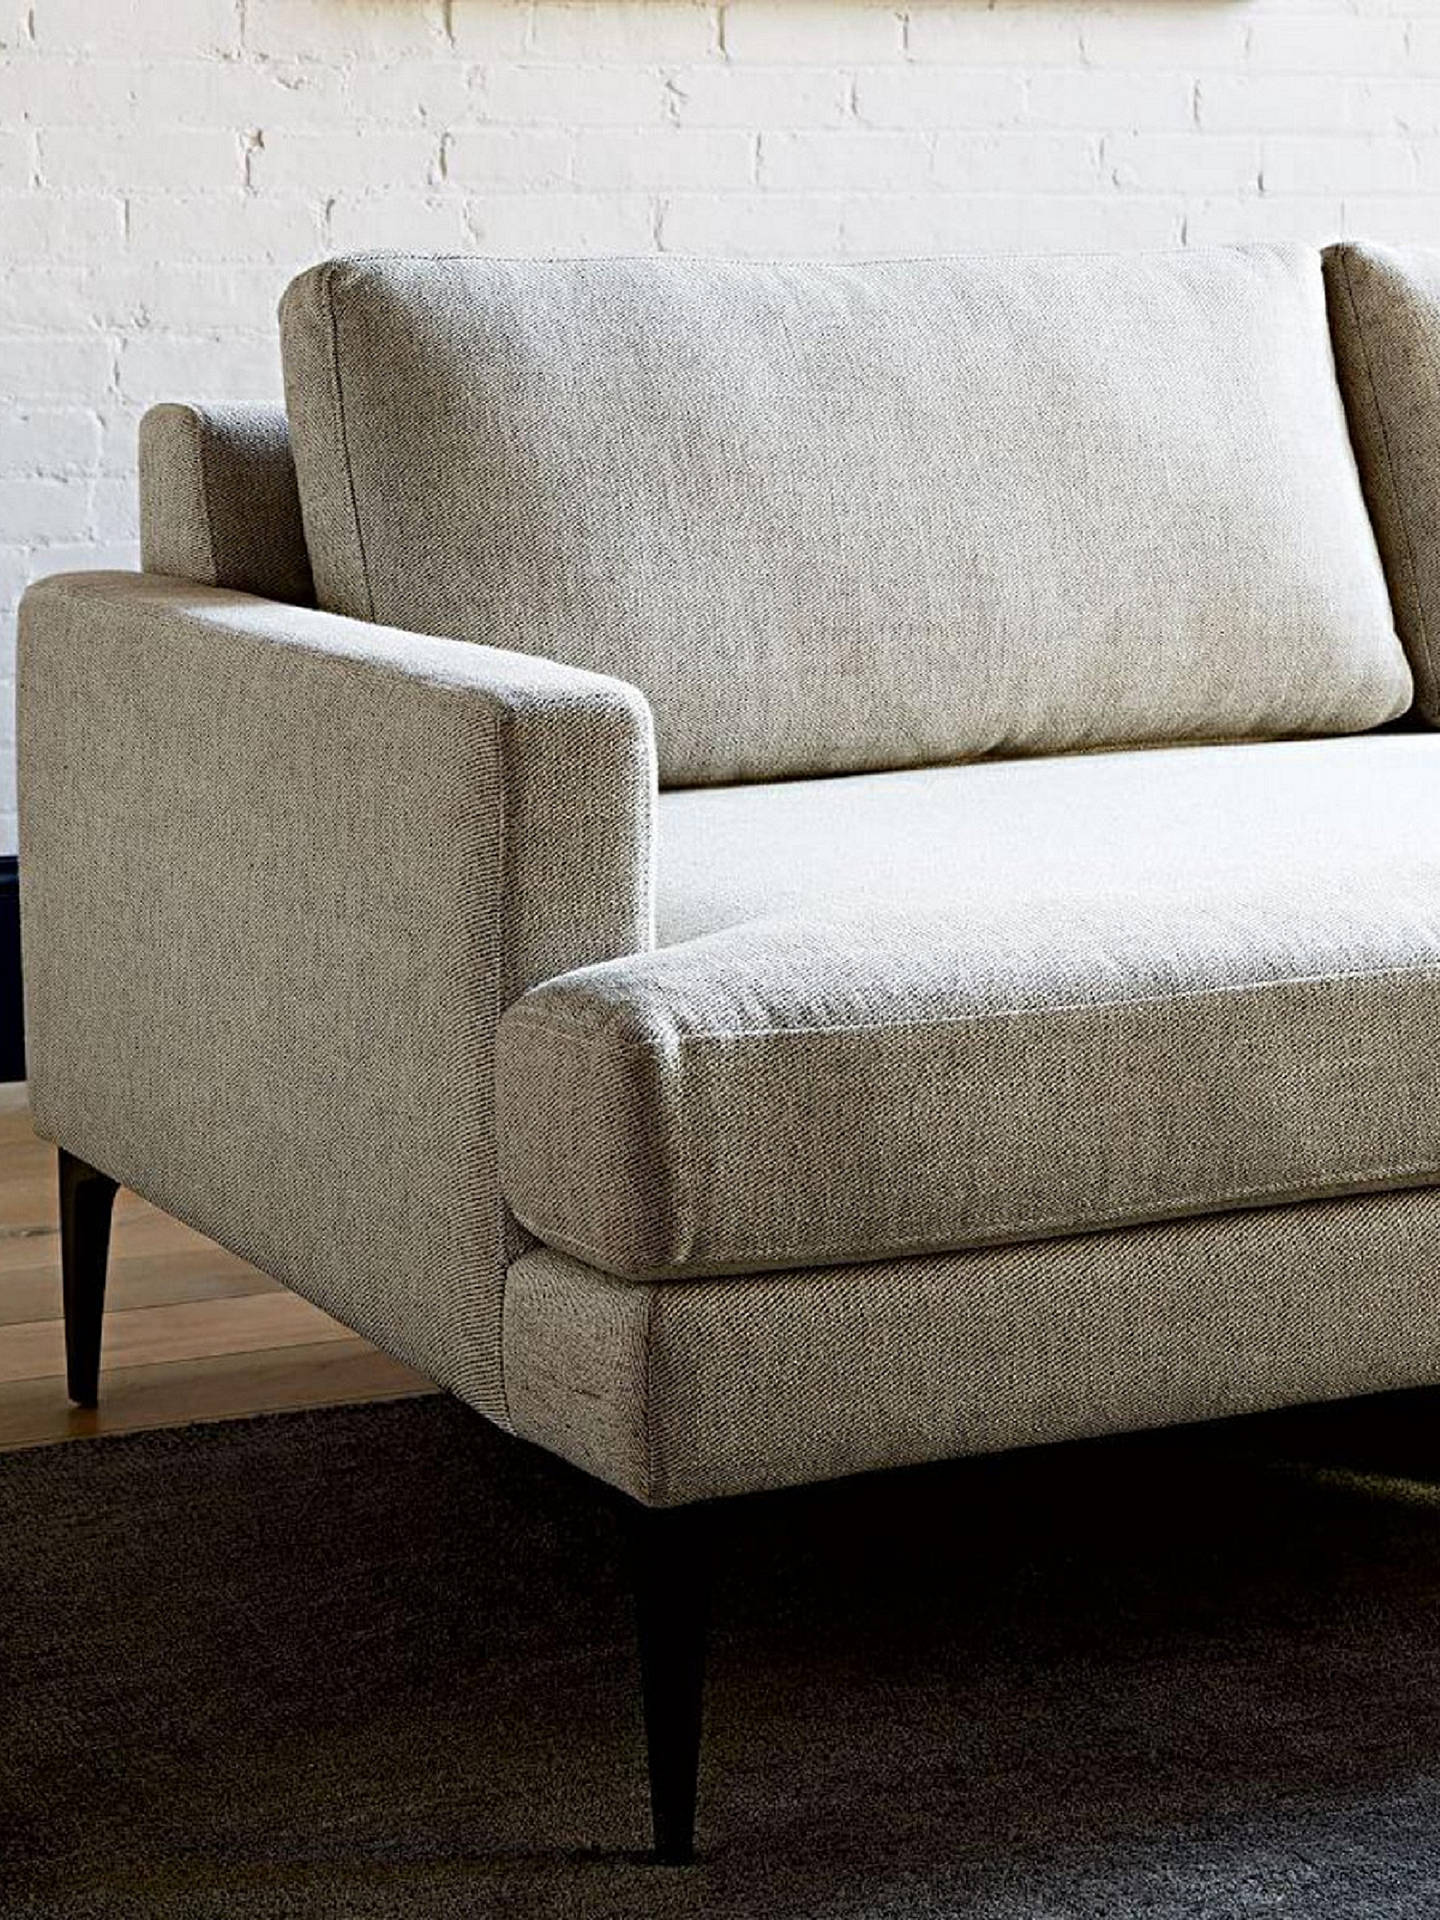 Fabulous West Elm Andes Large 3 Seater Rhf Sectional Sofa Granite Alphanode Cool Chair Designs And Ideas Alphanodeonline